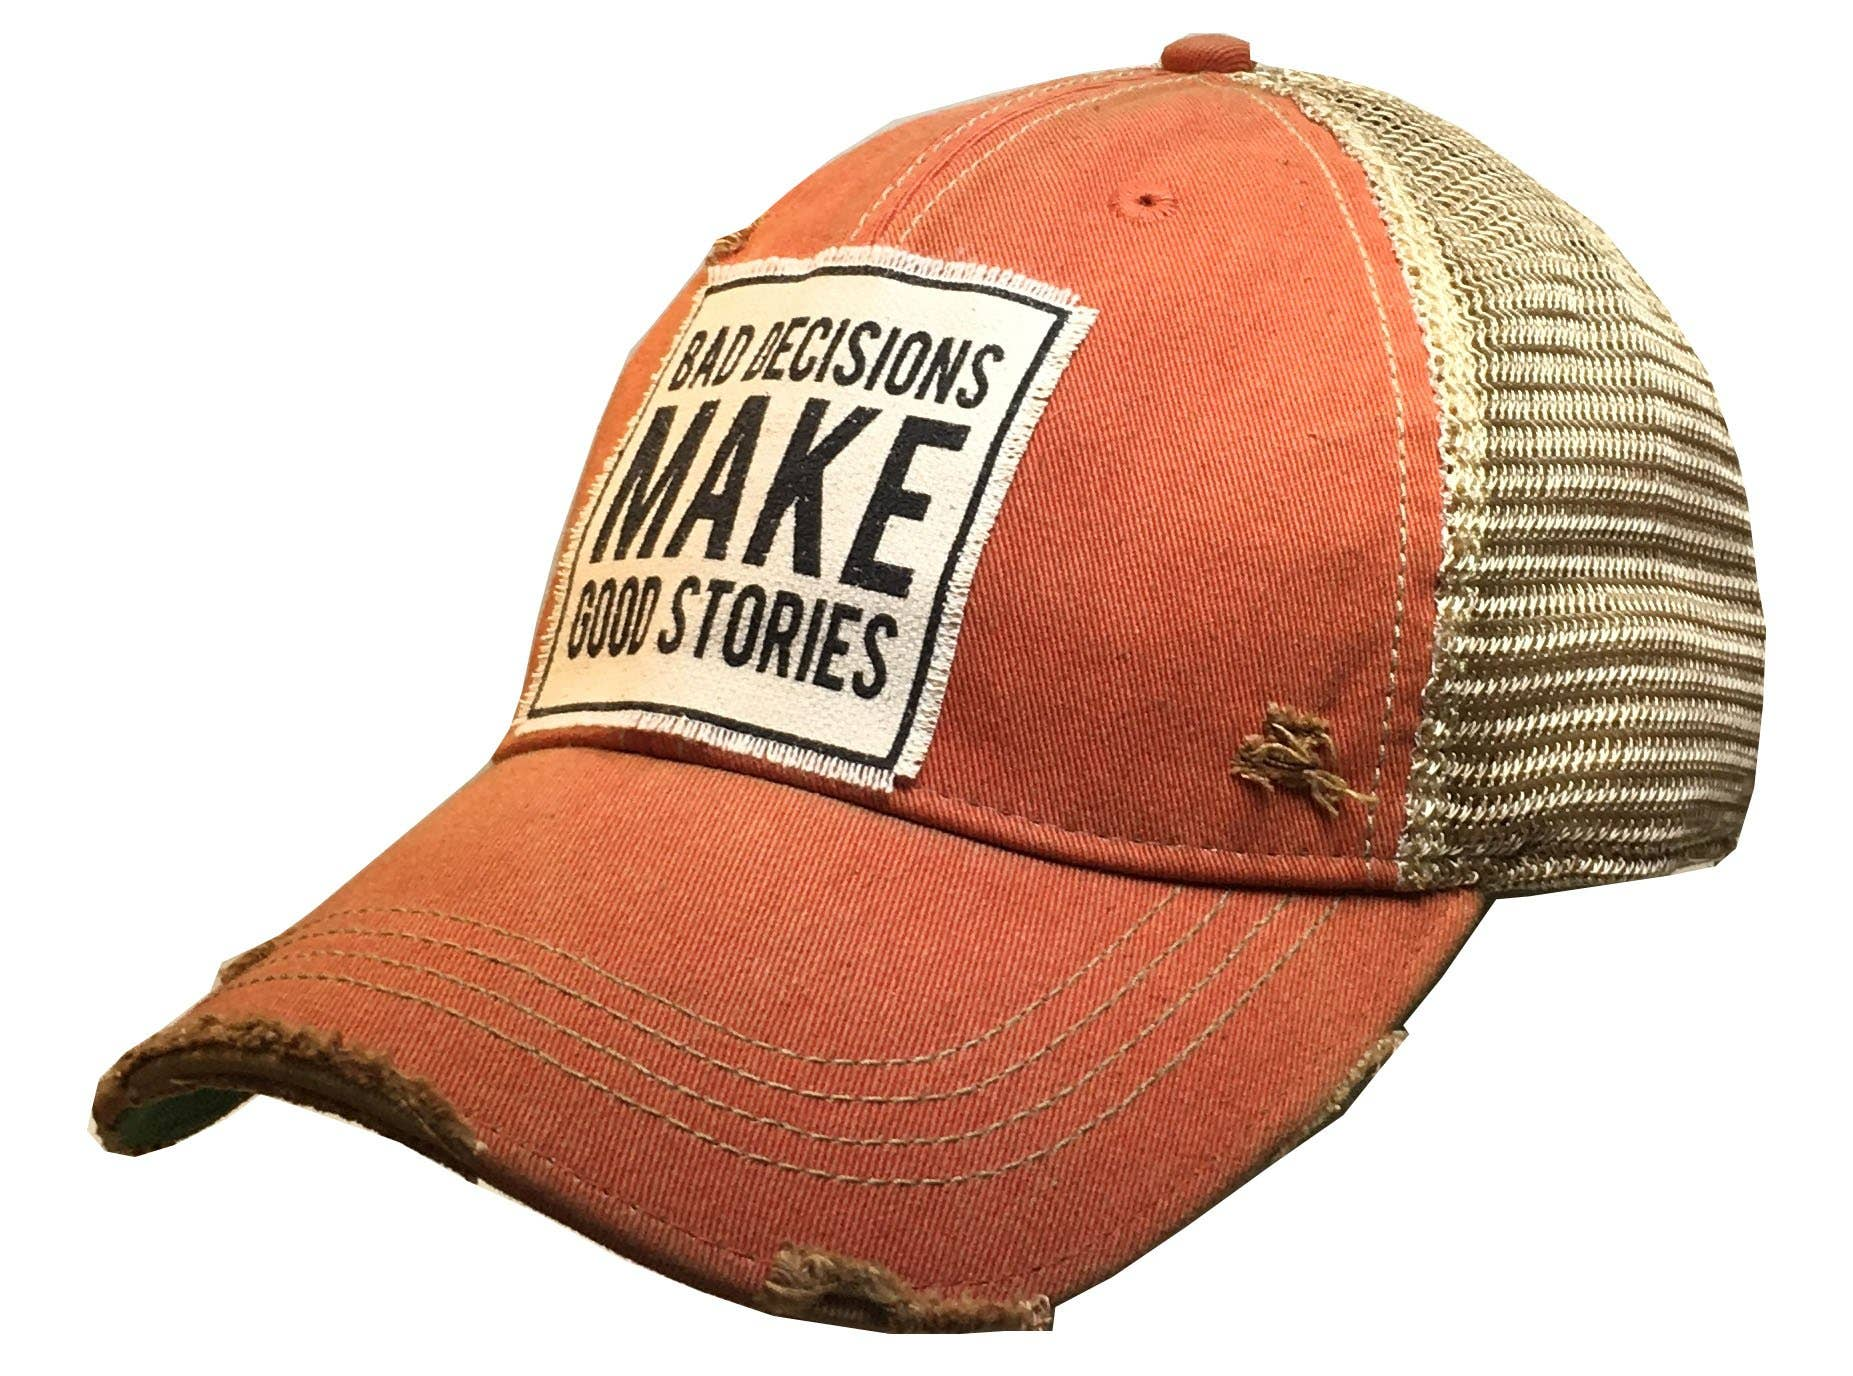 Bad Decisions Make Good Stories Distressed Trucker Cap